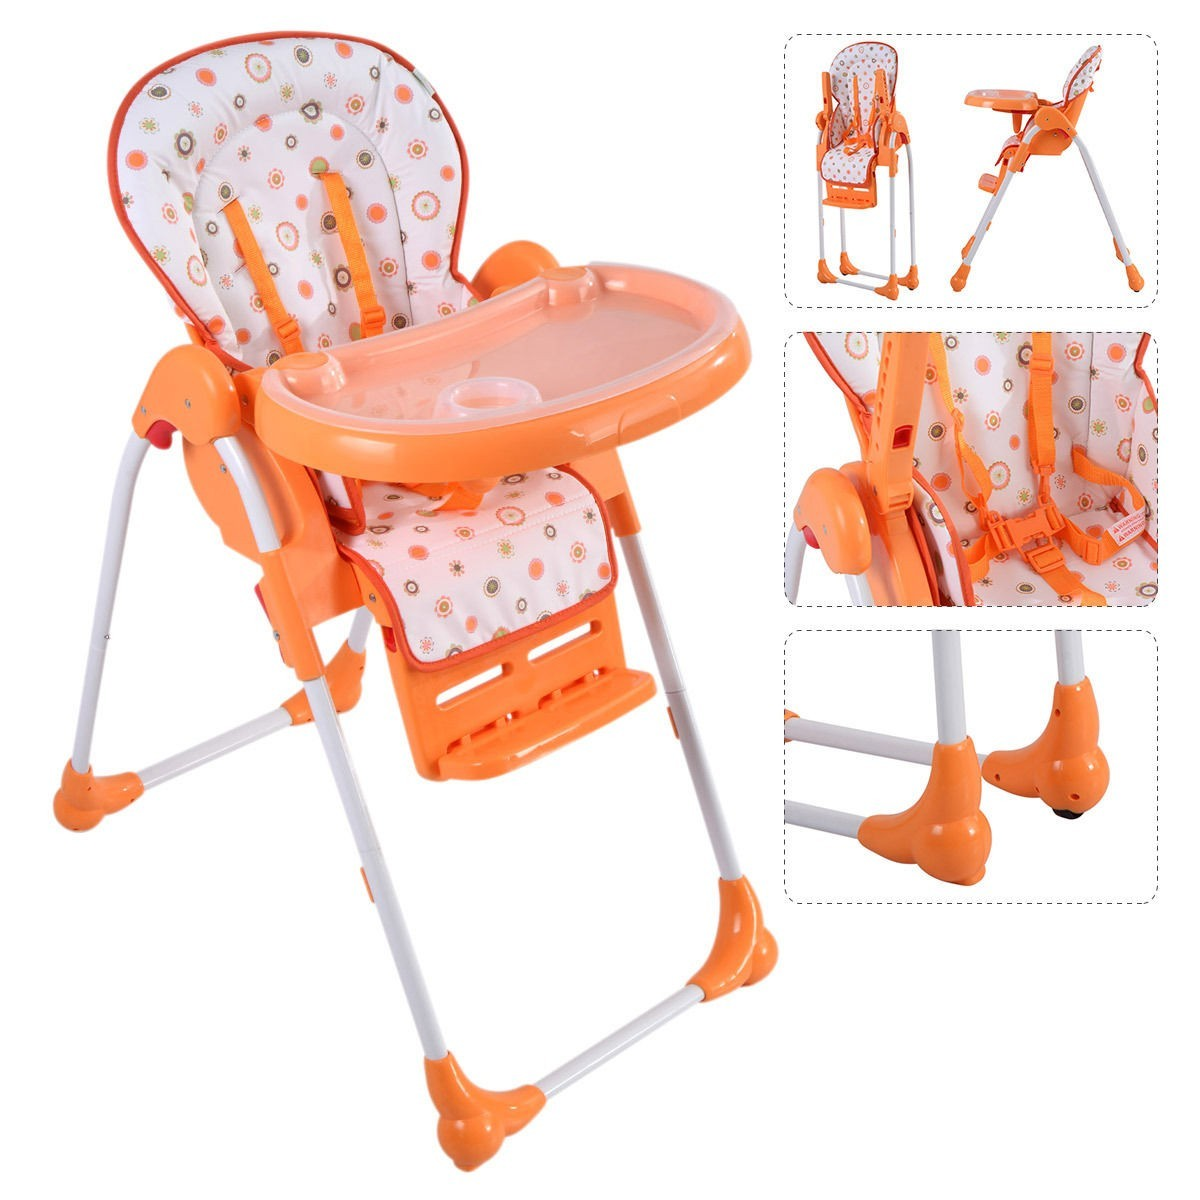 Adjustable Baby High Chair Infant Toddler Feeding Booster Seat Folding - Orange